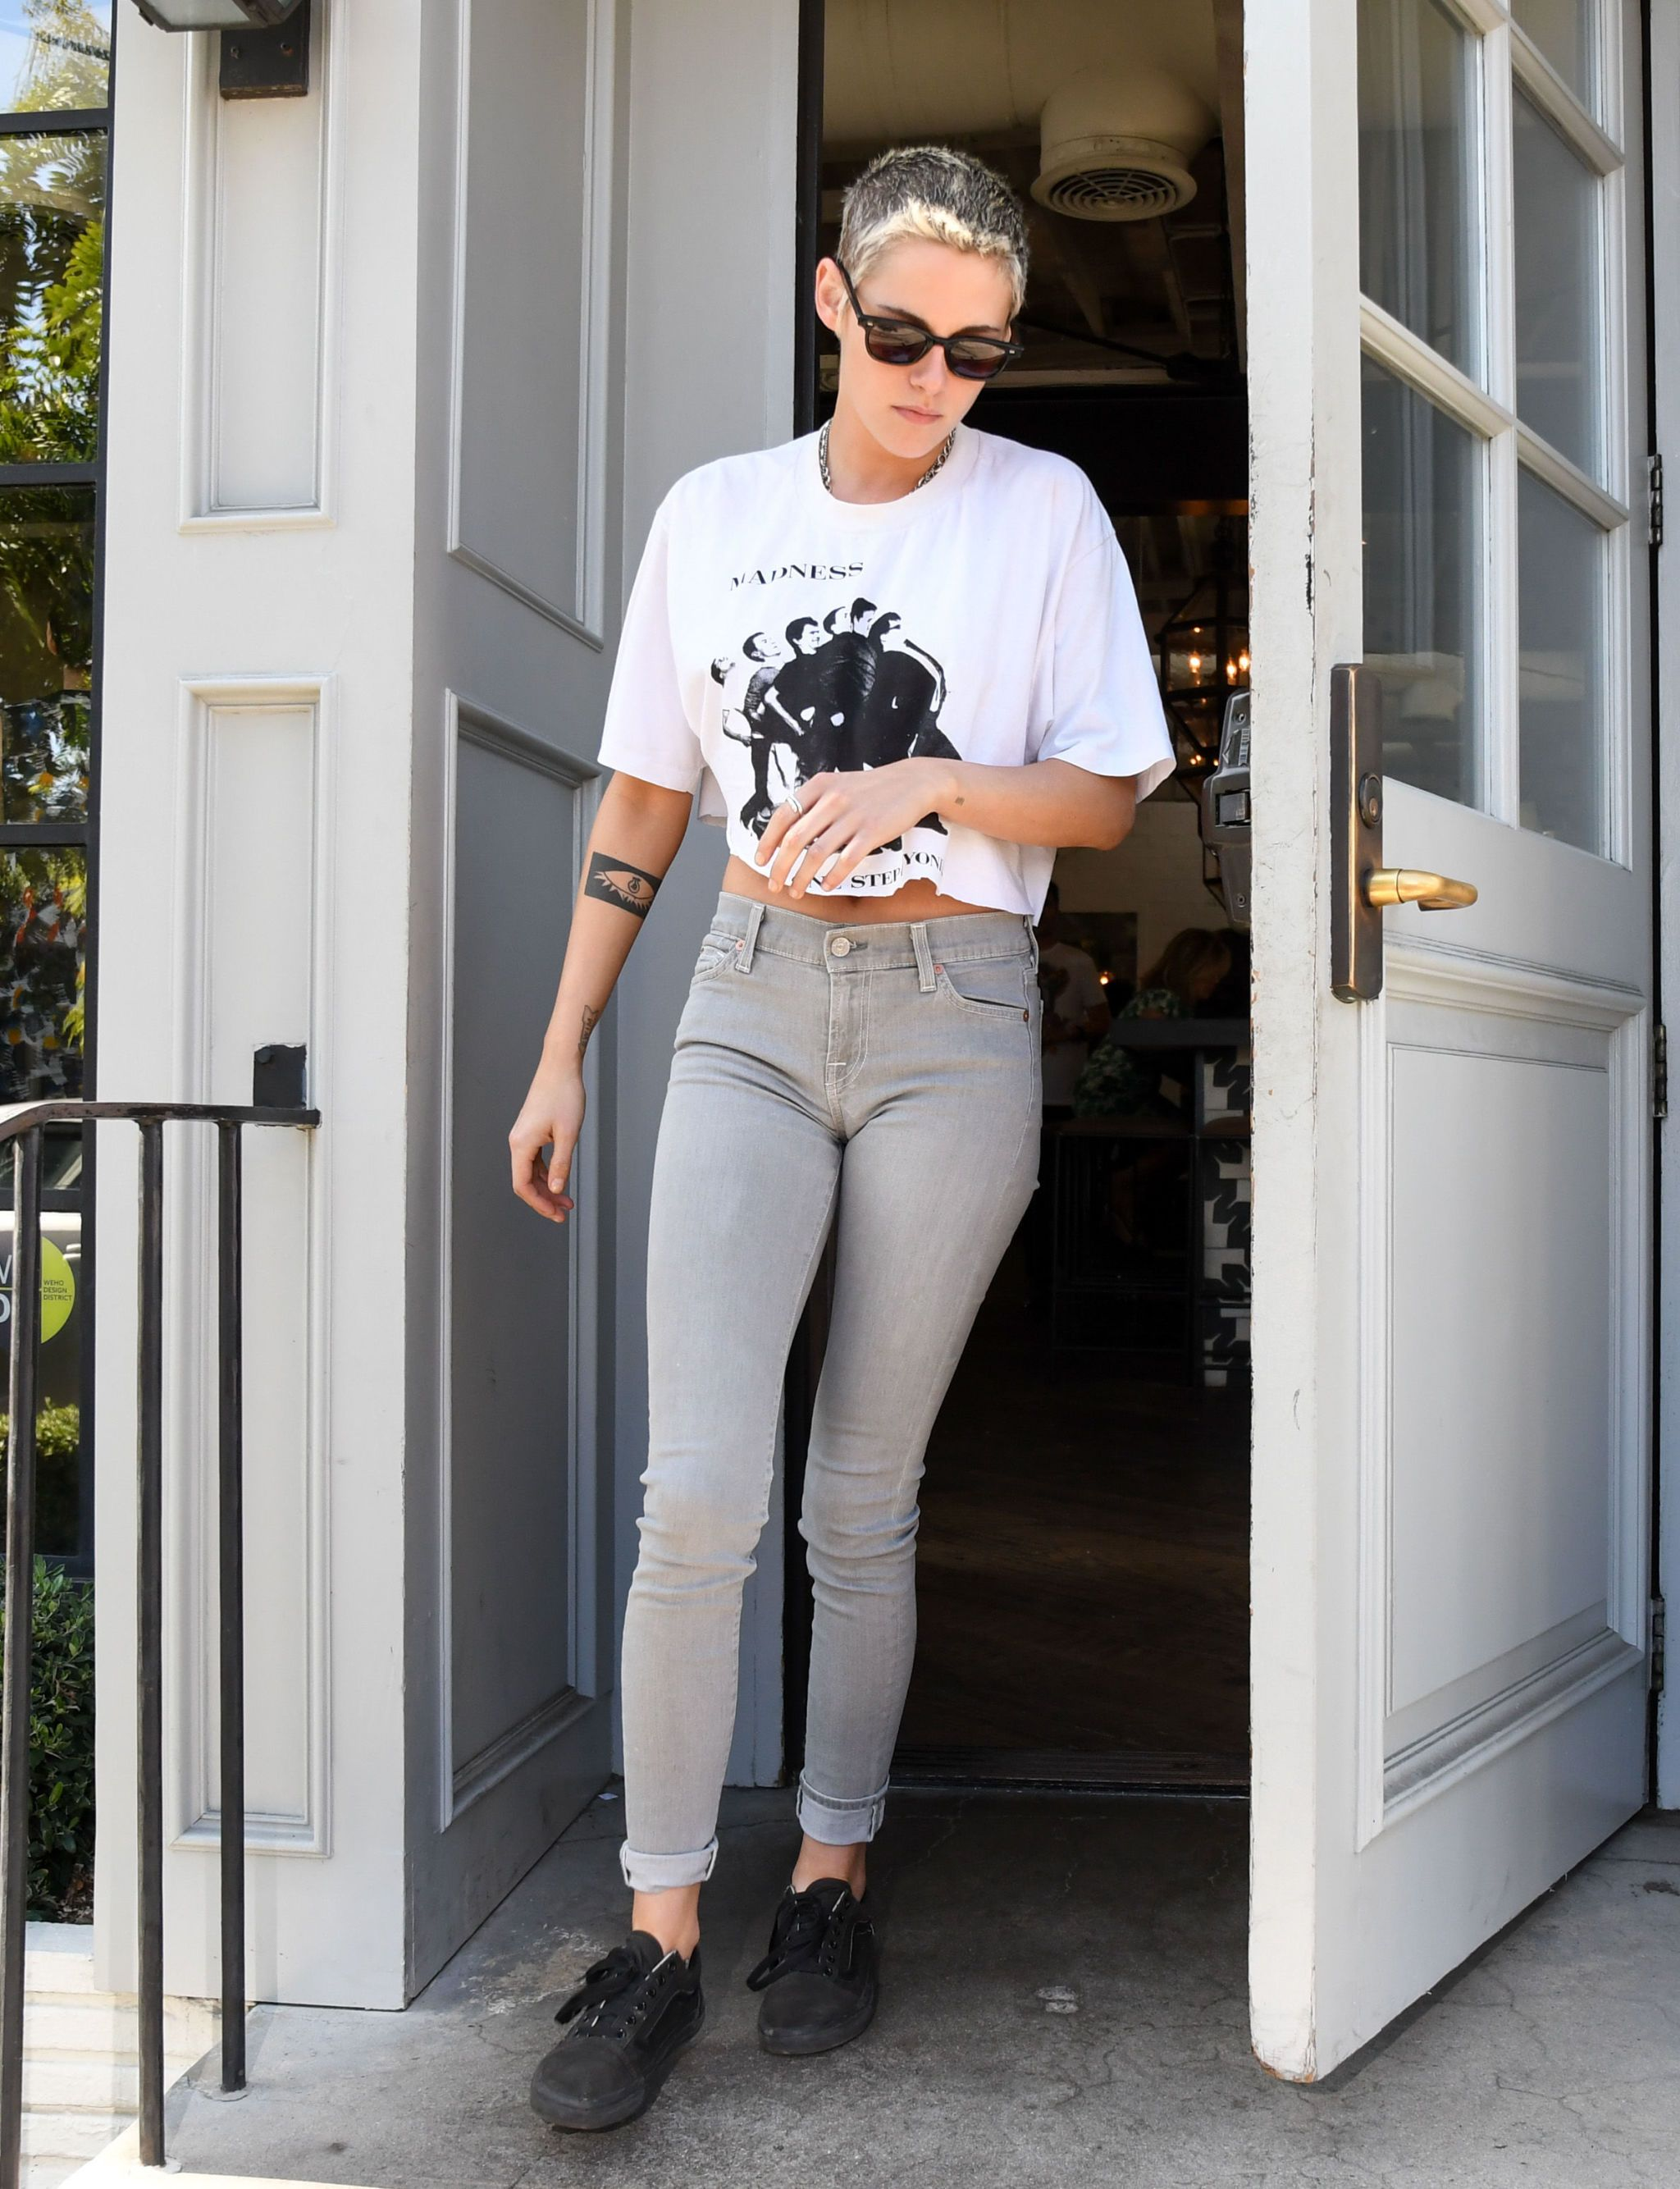 Kristen Stewart Clothes and Outfits | Page 17 | Star Style